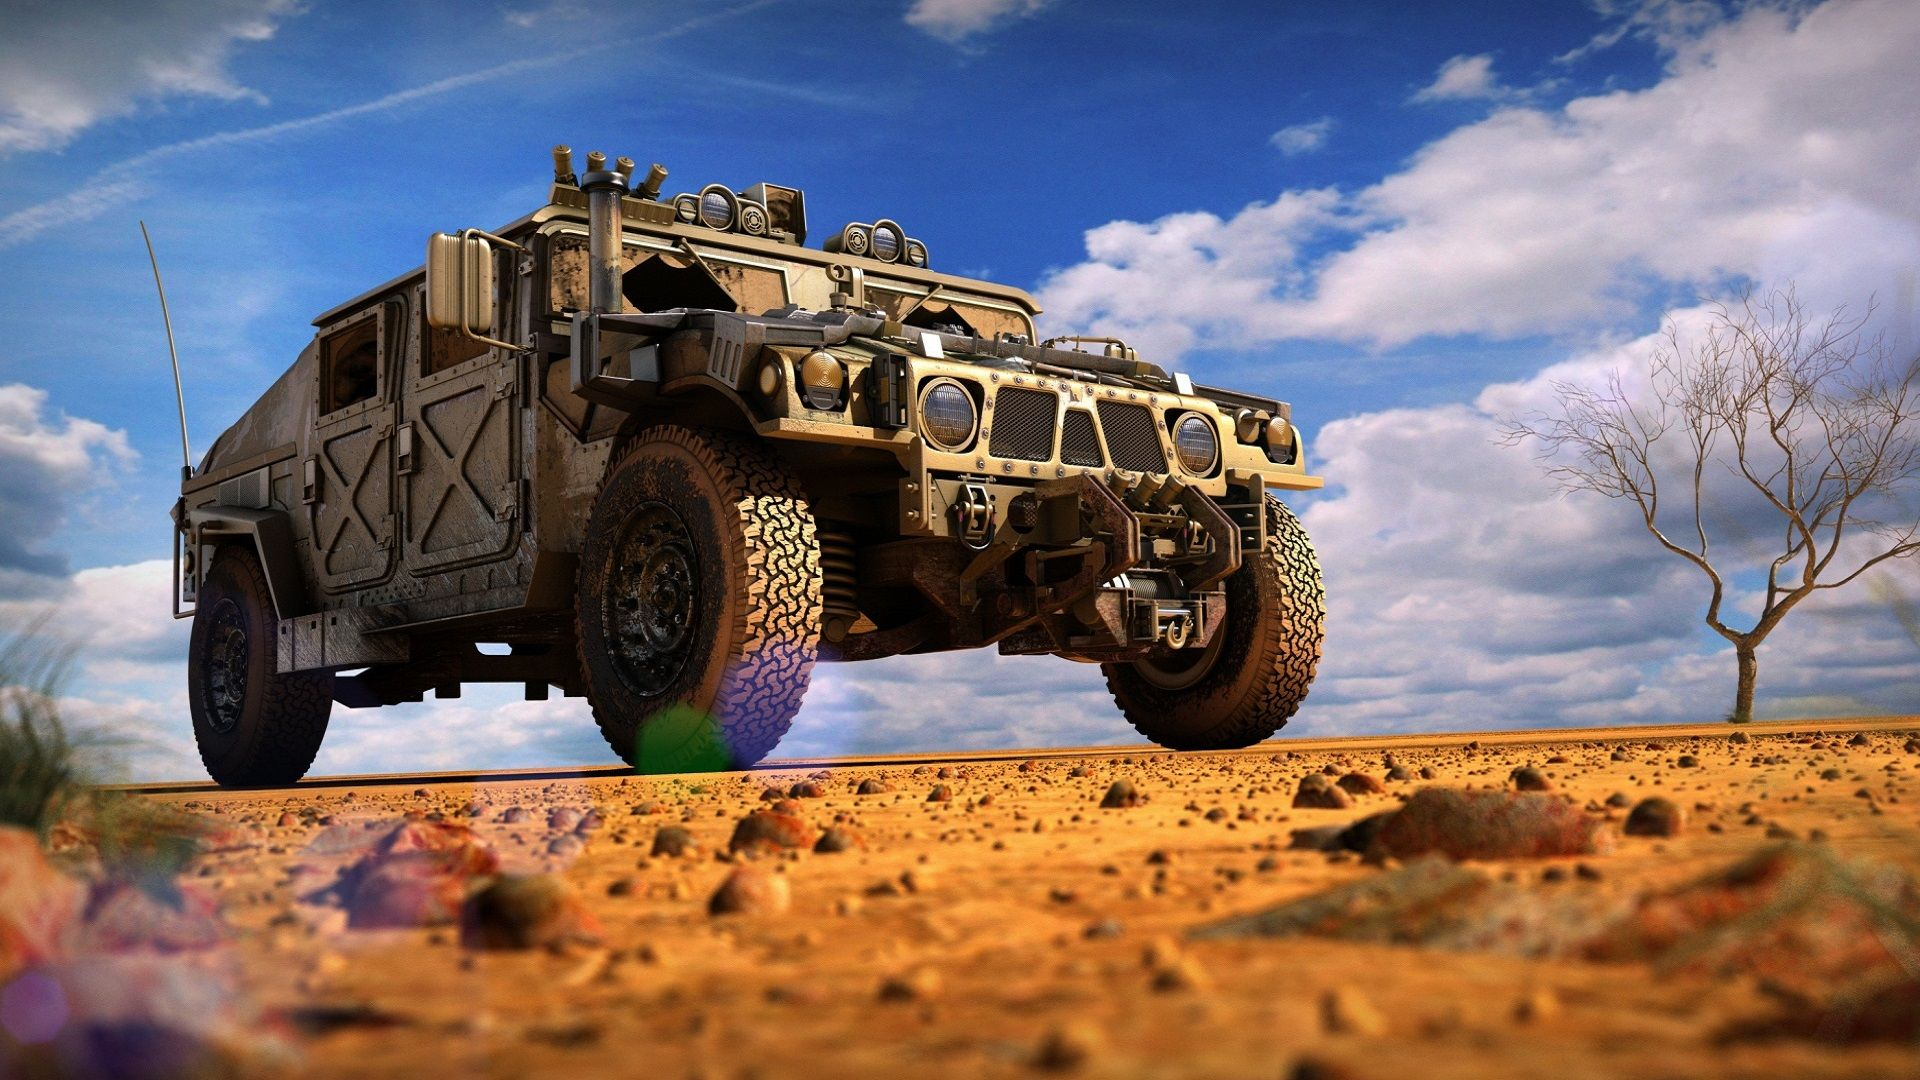 Military Hummer Wallpaper Con Imagenes Militar